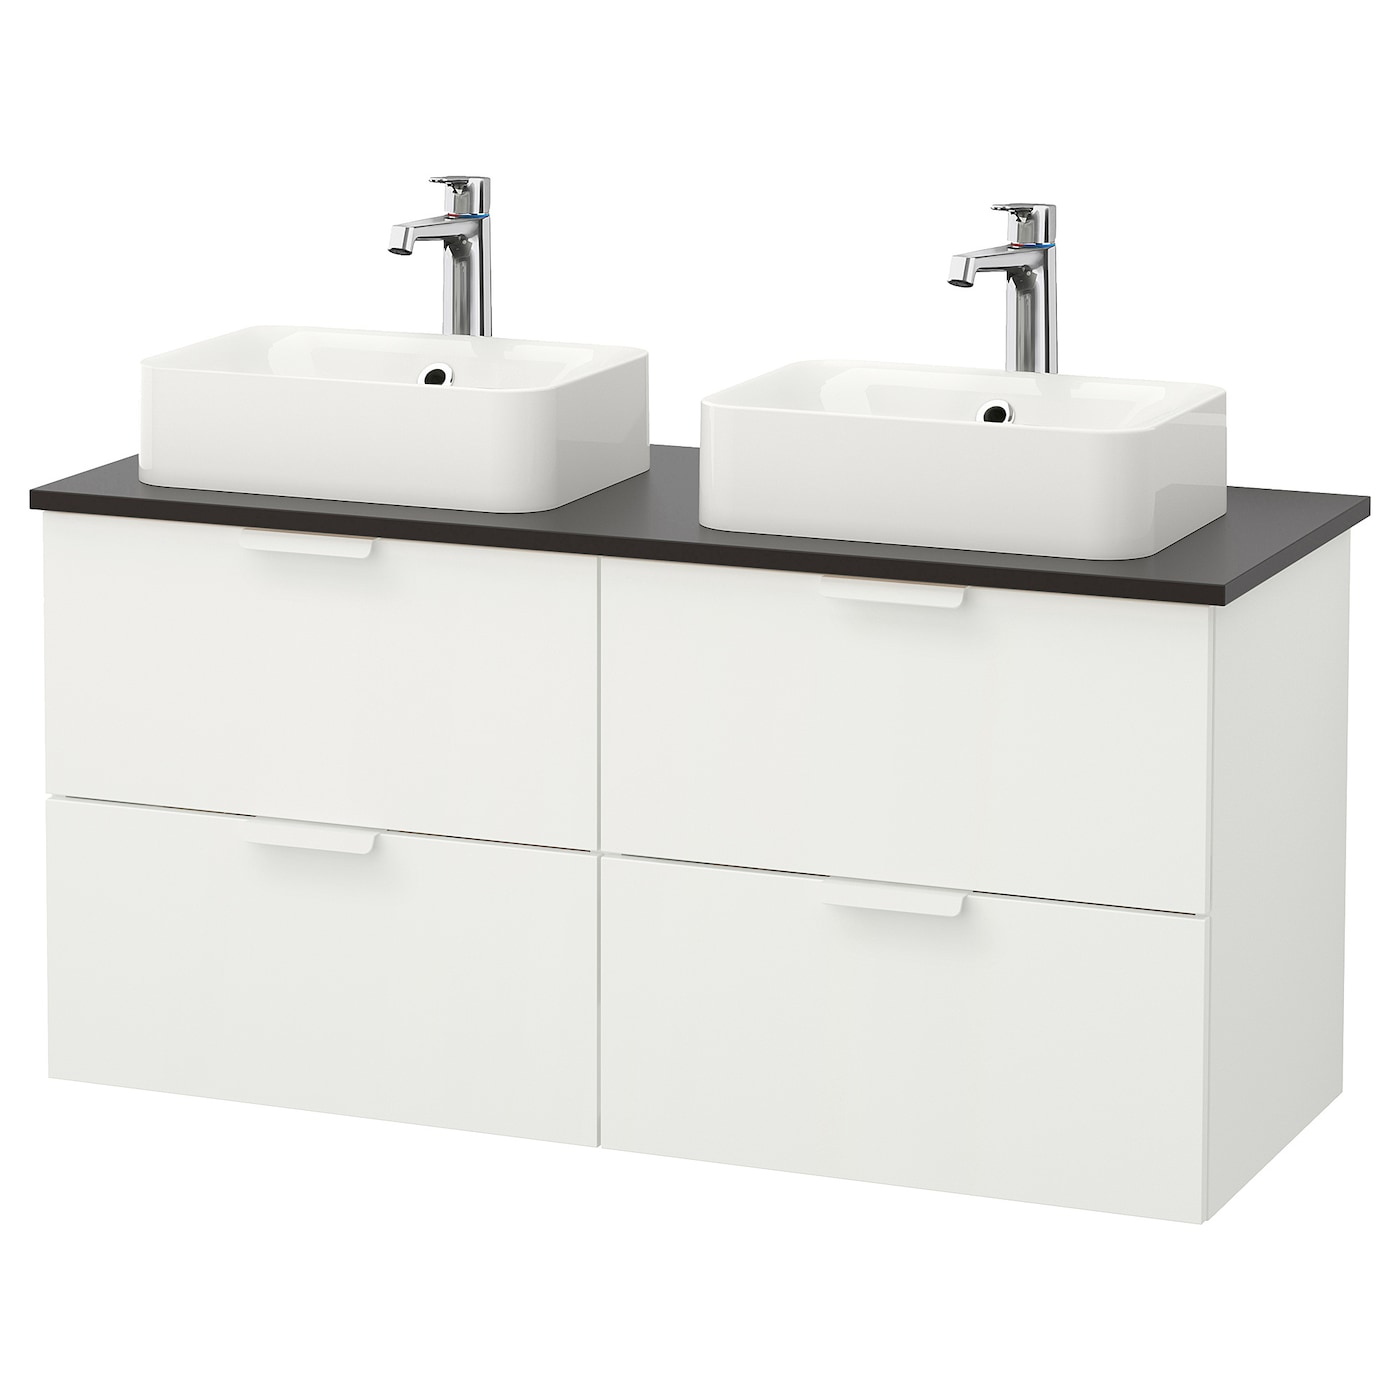 h rvik godmorgon tolken meuble lavabo av lav poser 45x32 blanc anthracite 122x49x72 cm ikea. Black Bedroom Furniture Sets. Home Design Ideas